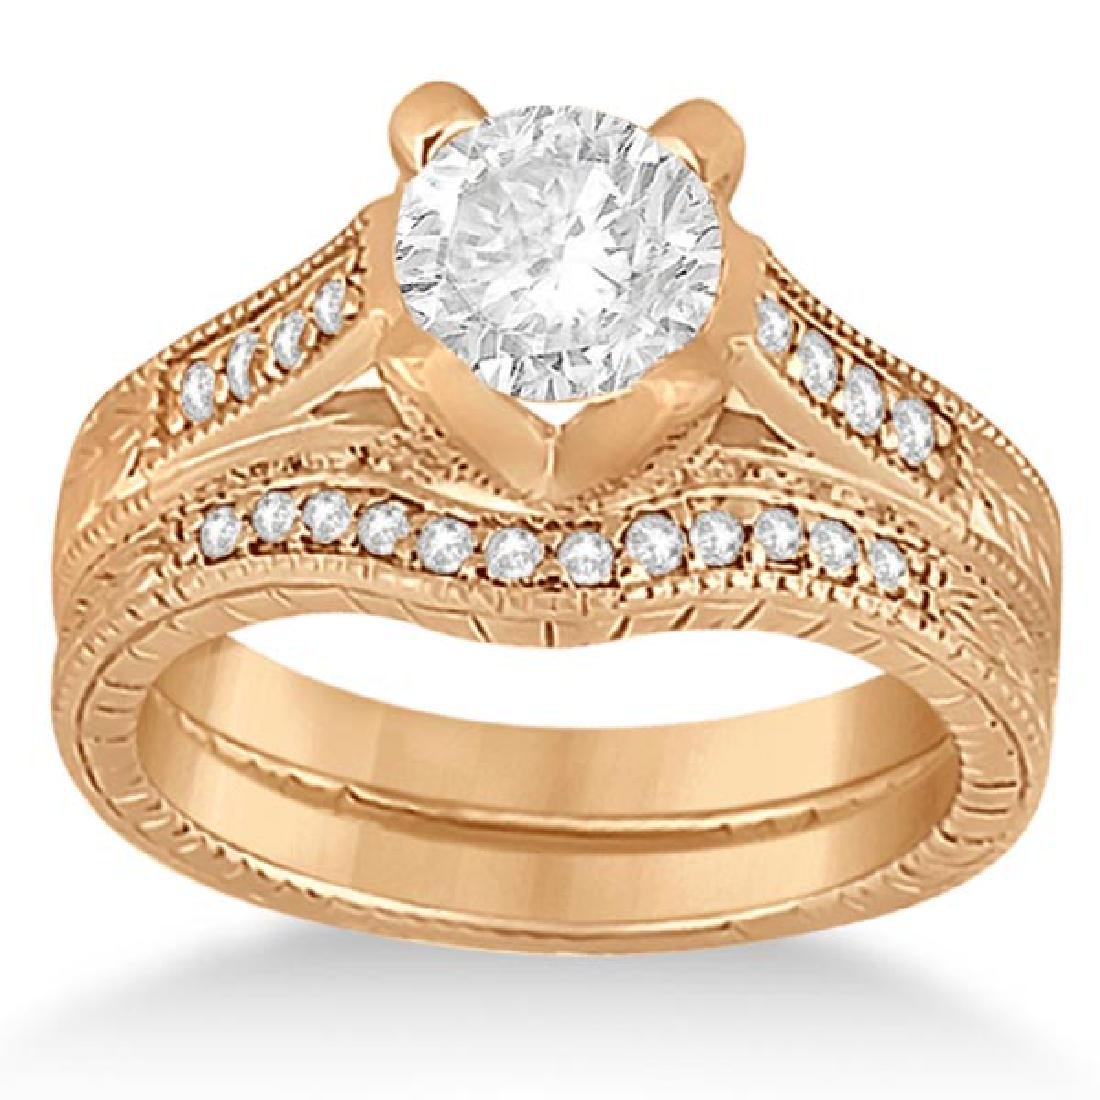 Antique Style Engagement Ring and Band in 14k Rose Gold